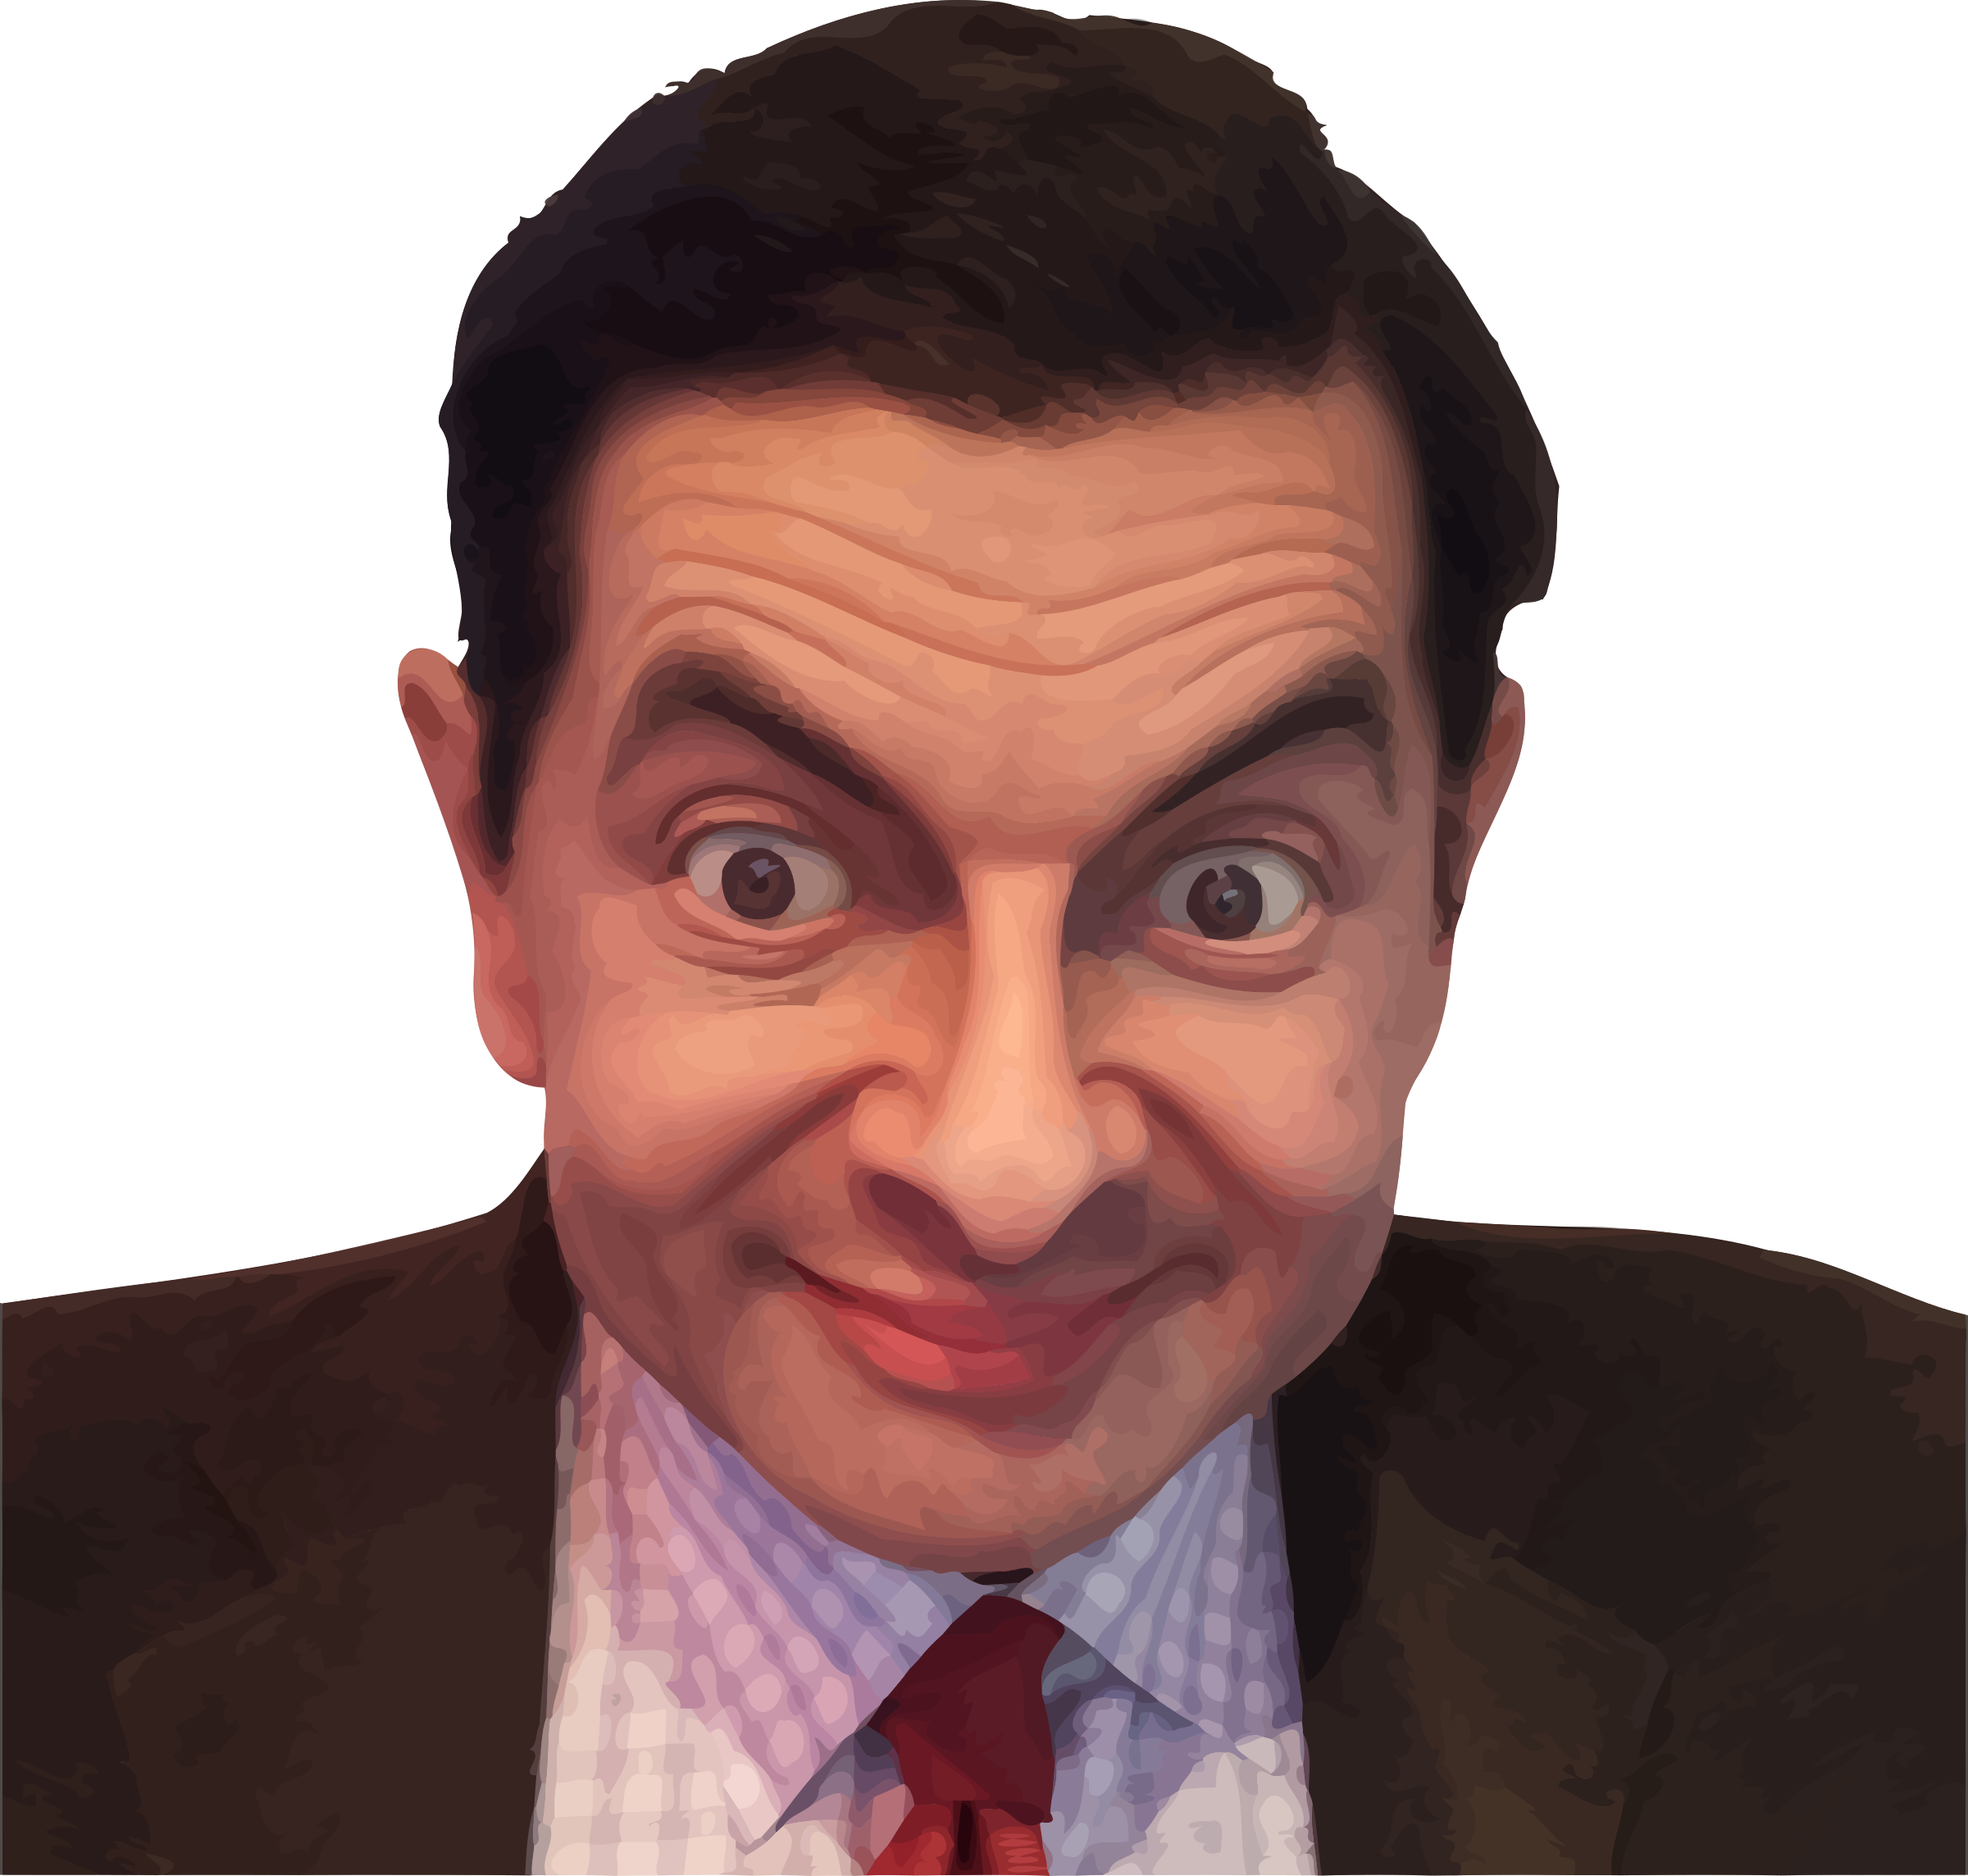 Mr Bean by Firkin